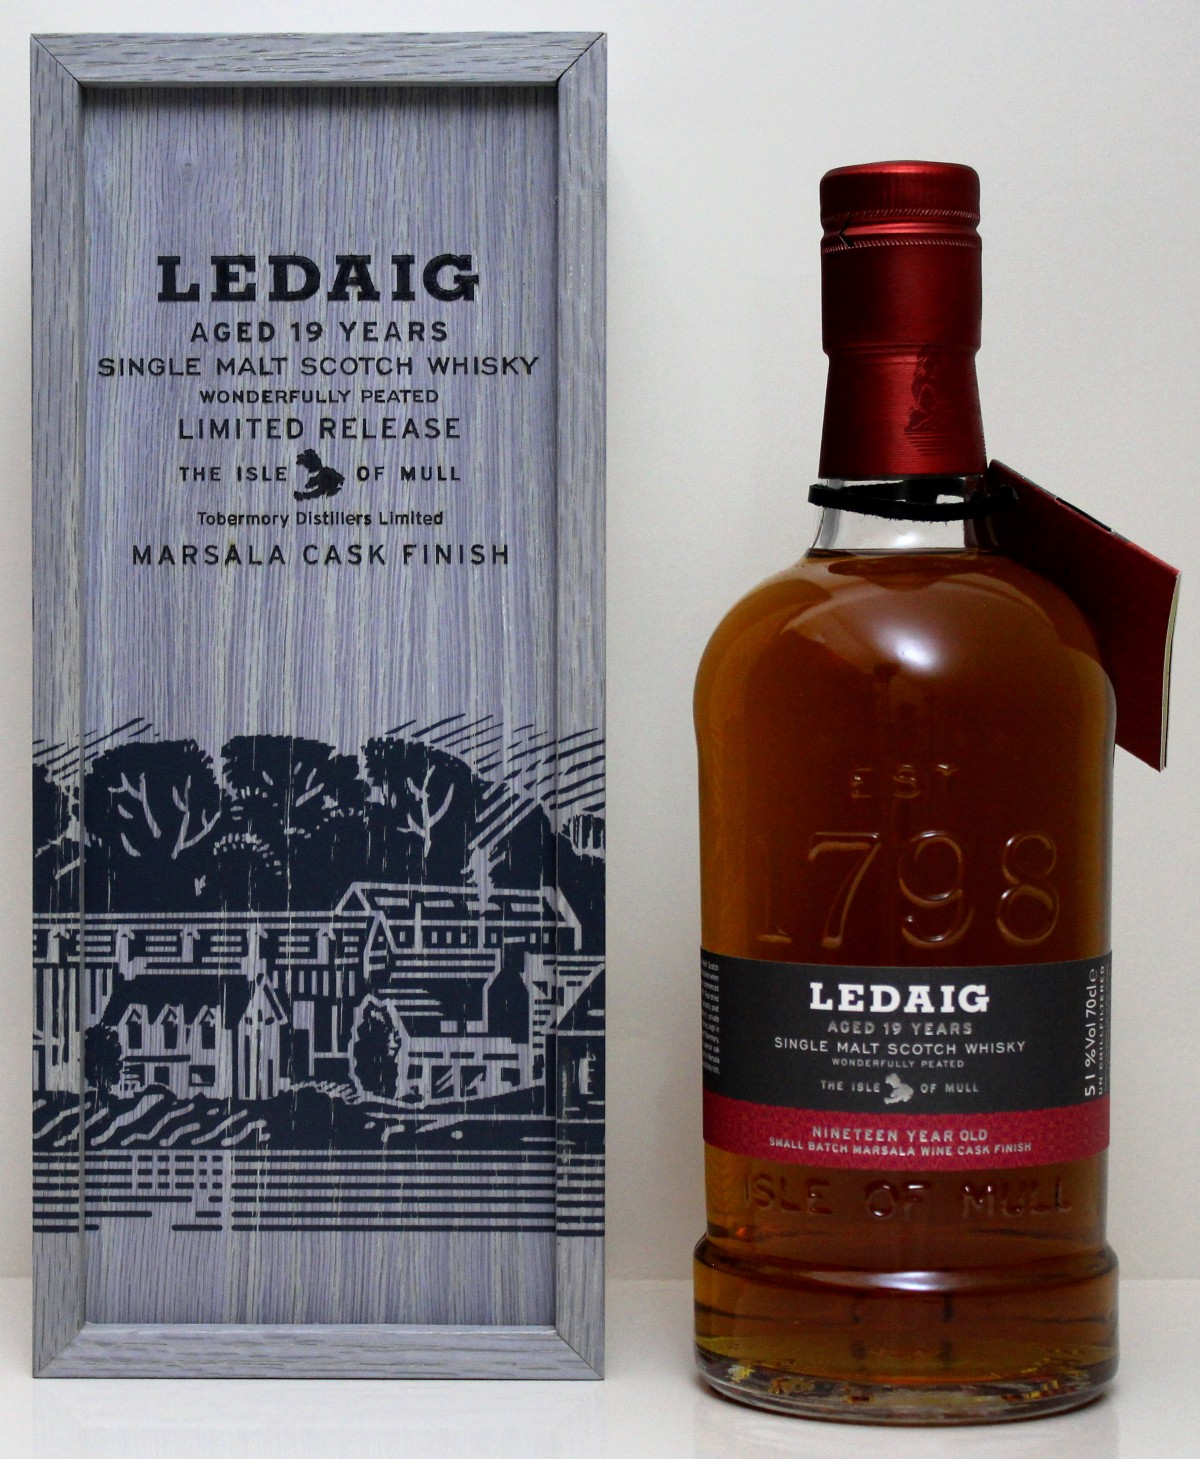 Ledaig 19 Jajre (Marsal Cask Finish) 51%vol.